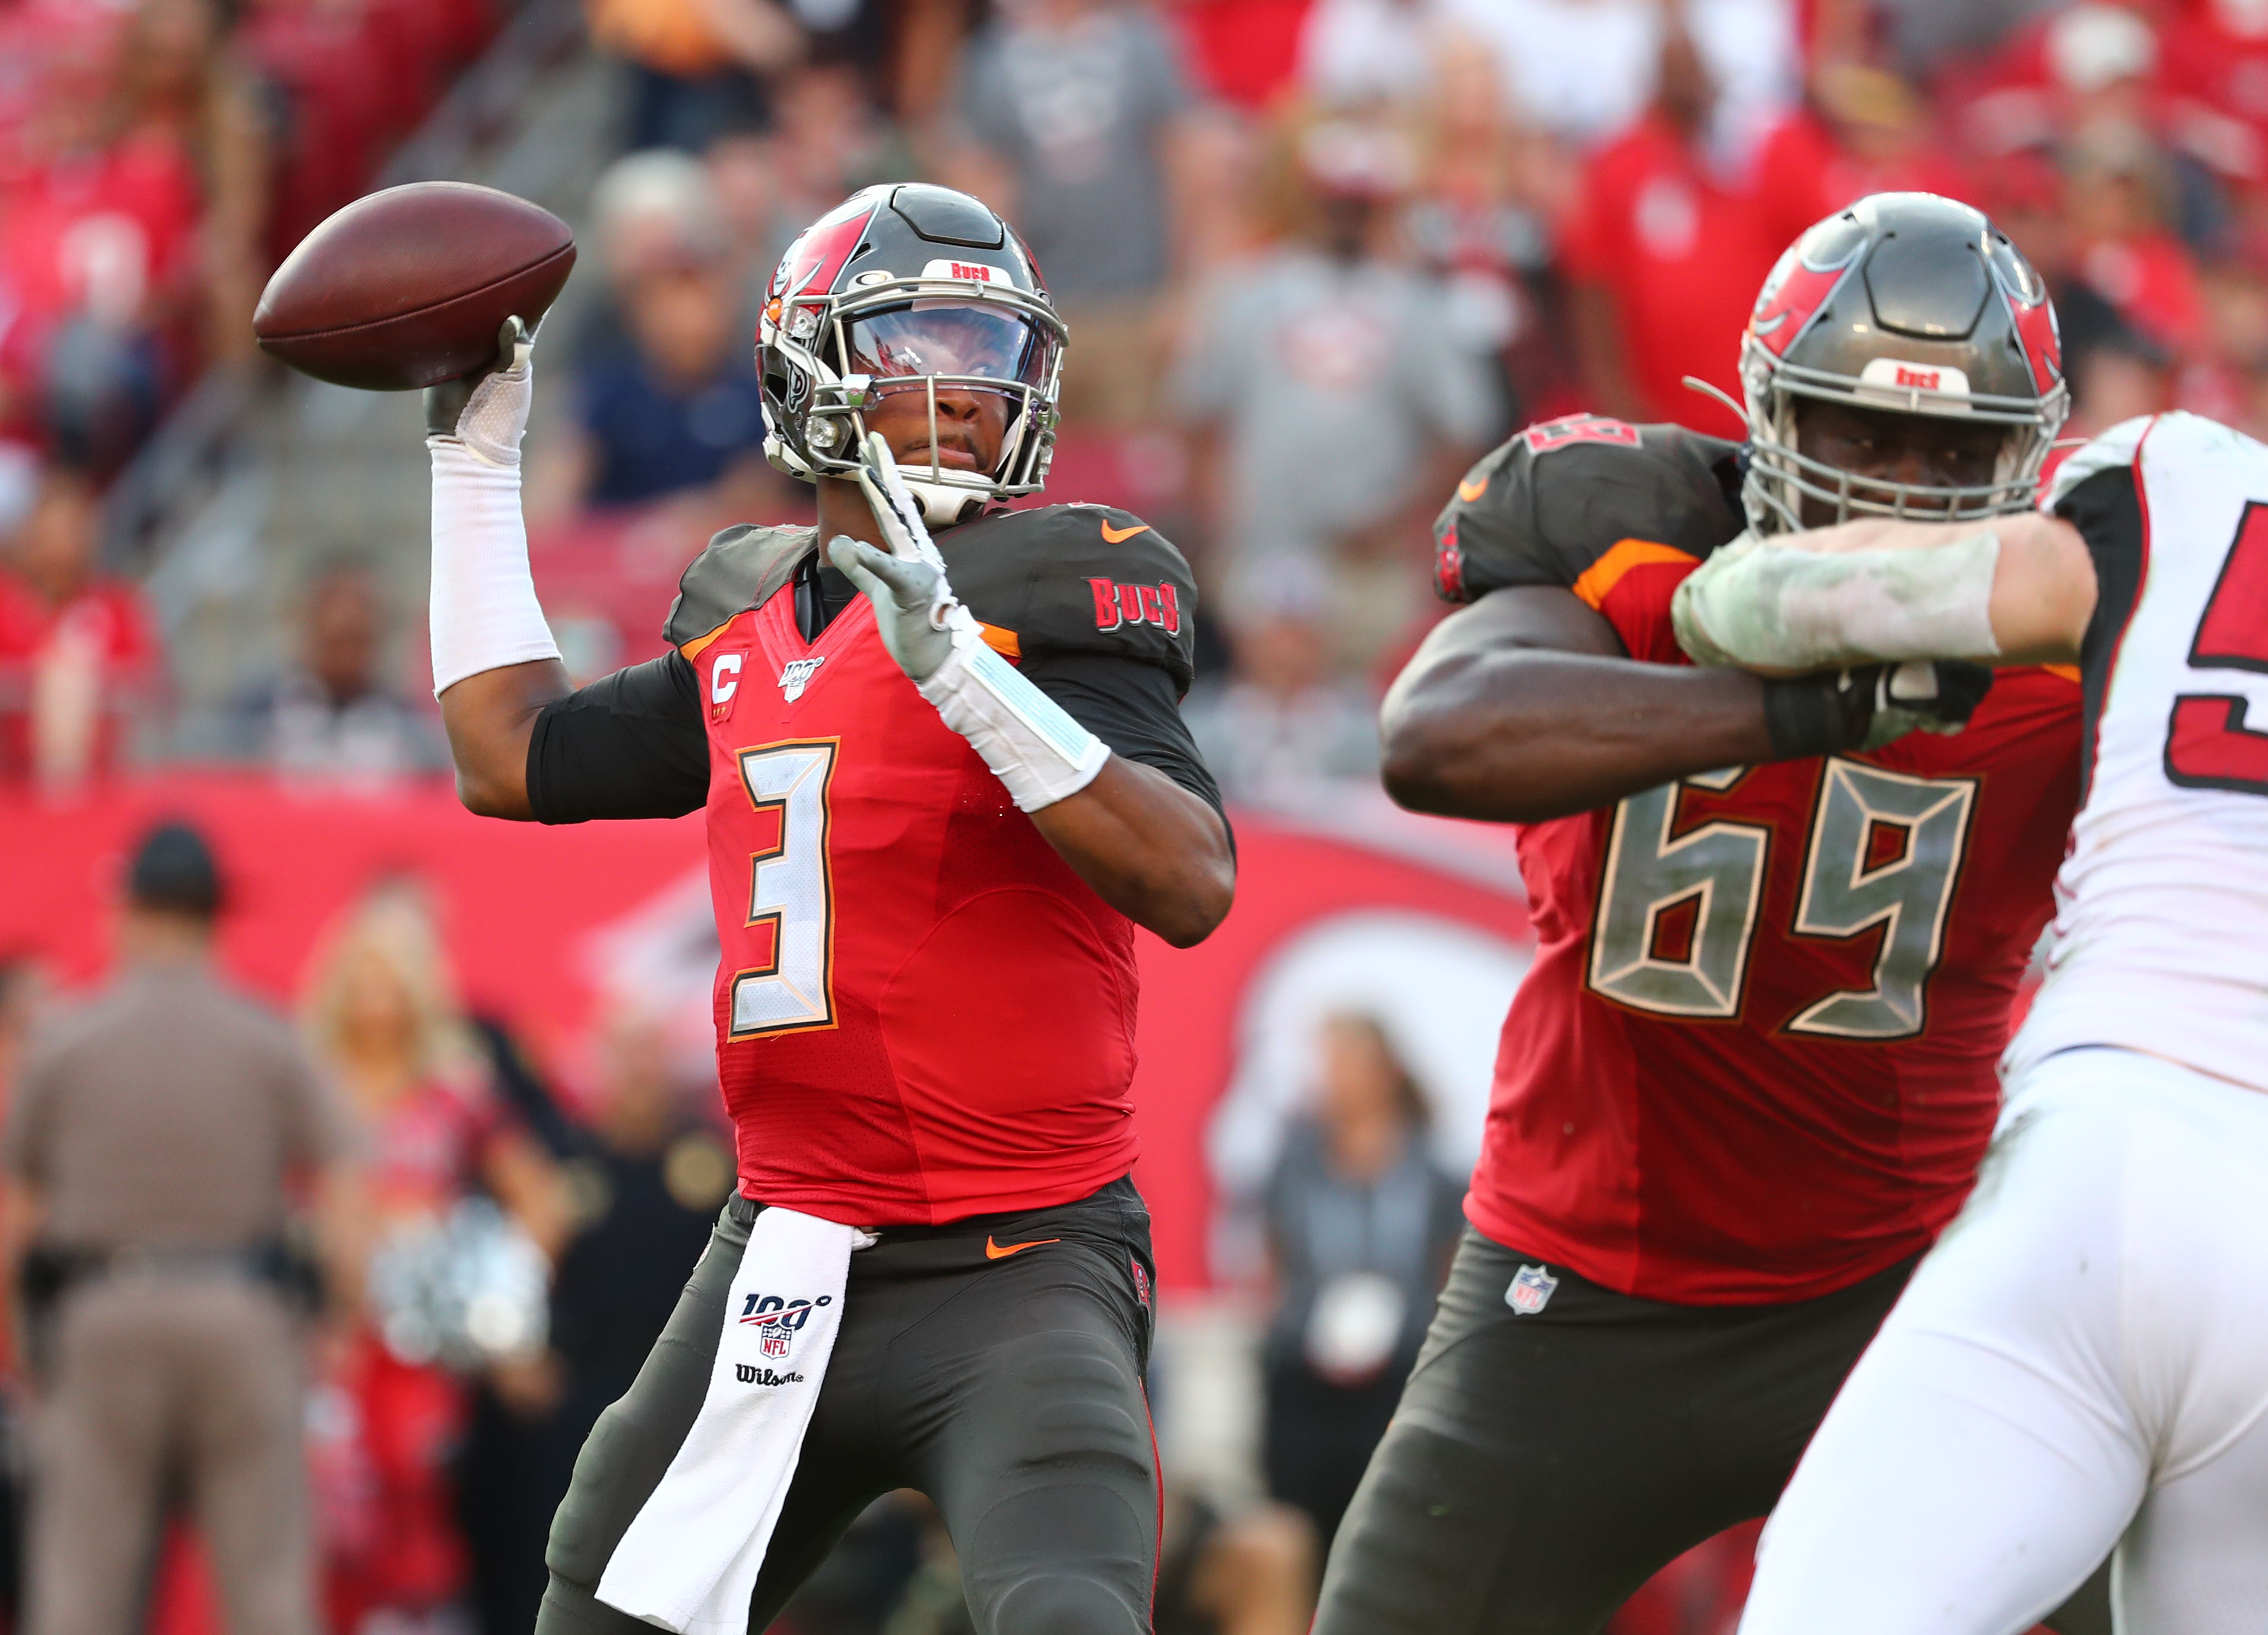 What's the possibility of Washington Redskins signing Jameis Winston to start at QB?